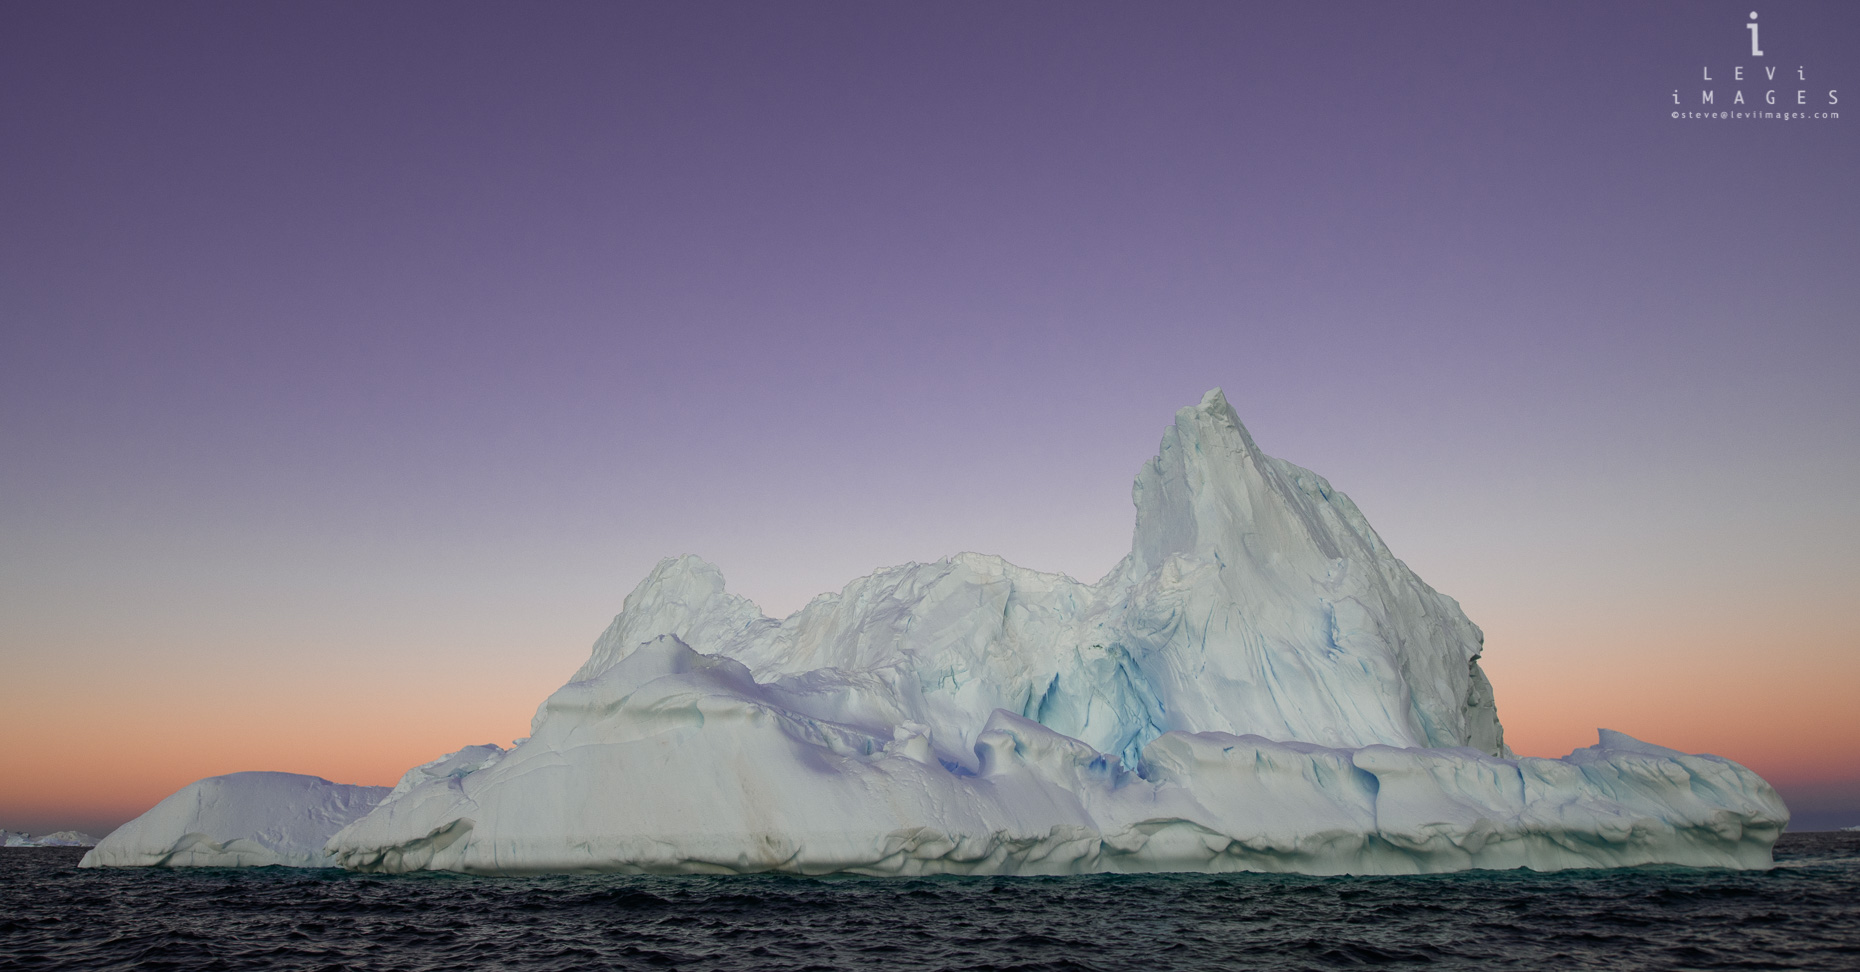 An iceberg bathed in the purple post-sunset light, Antarctica